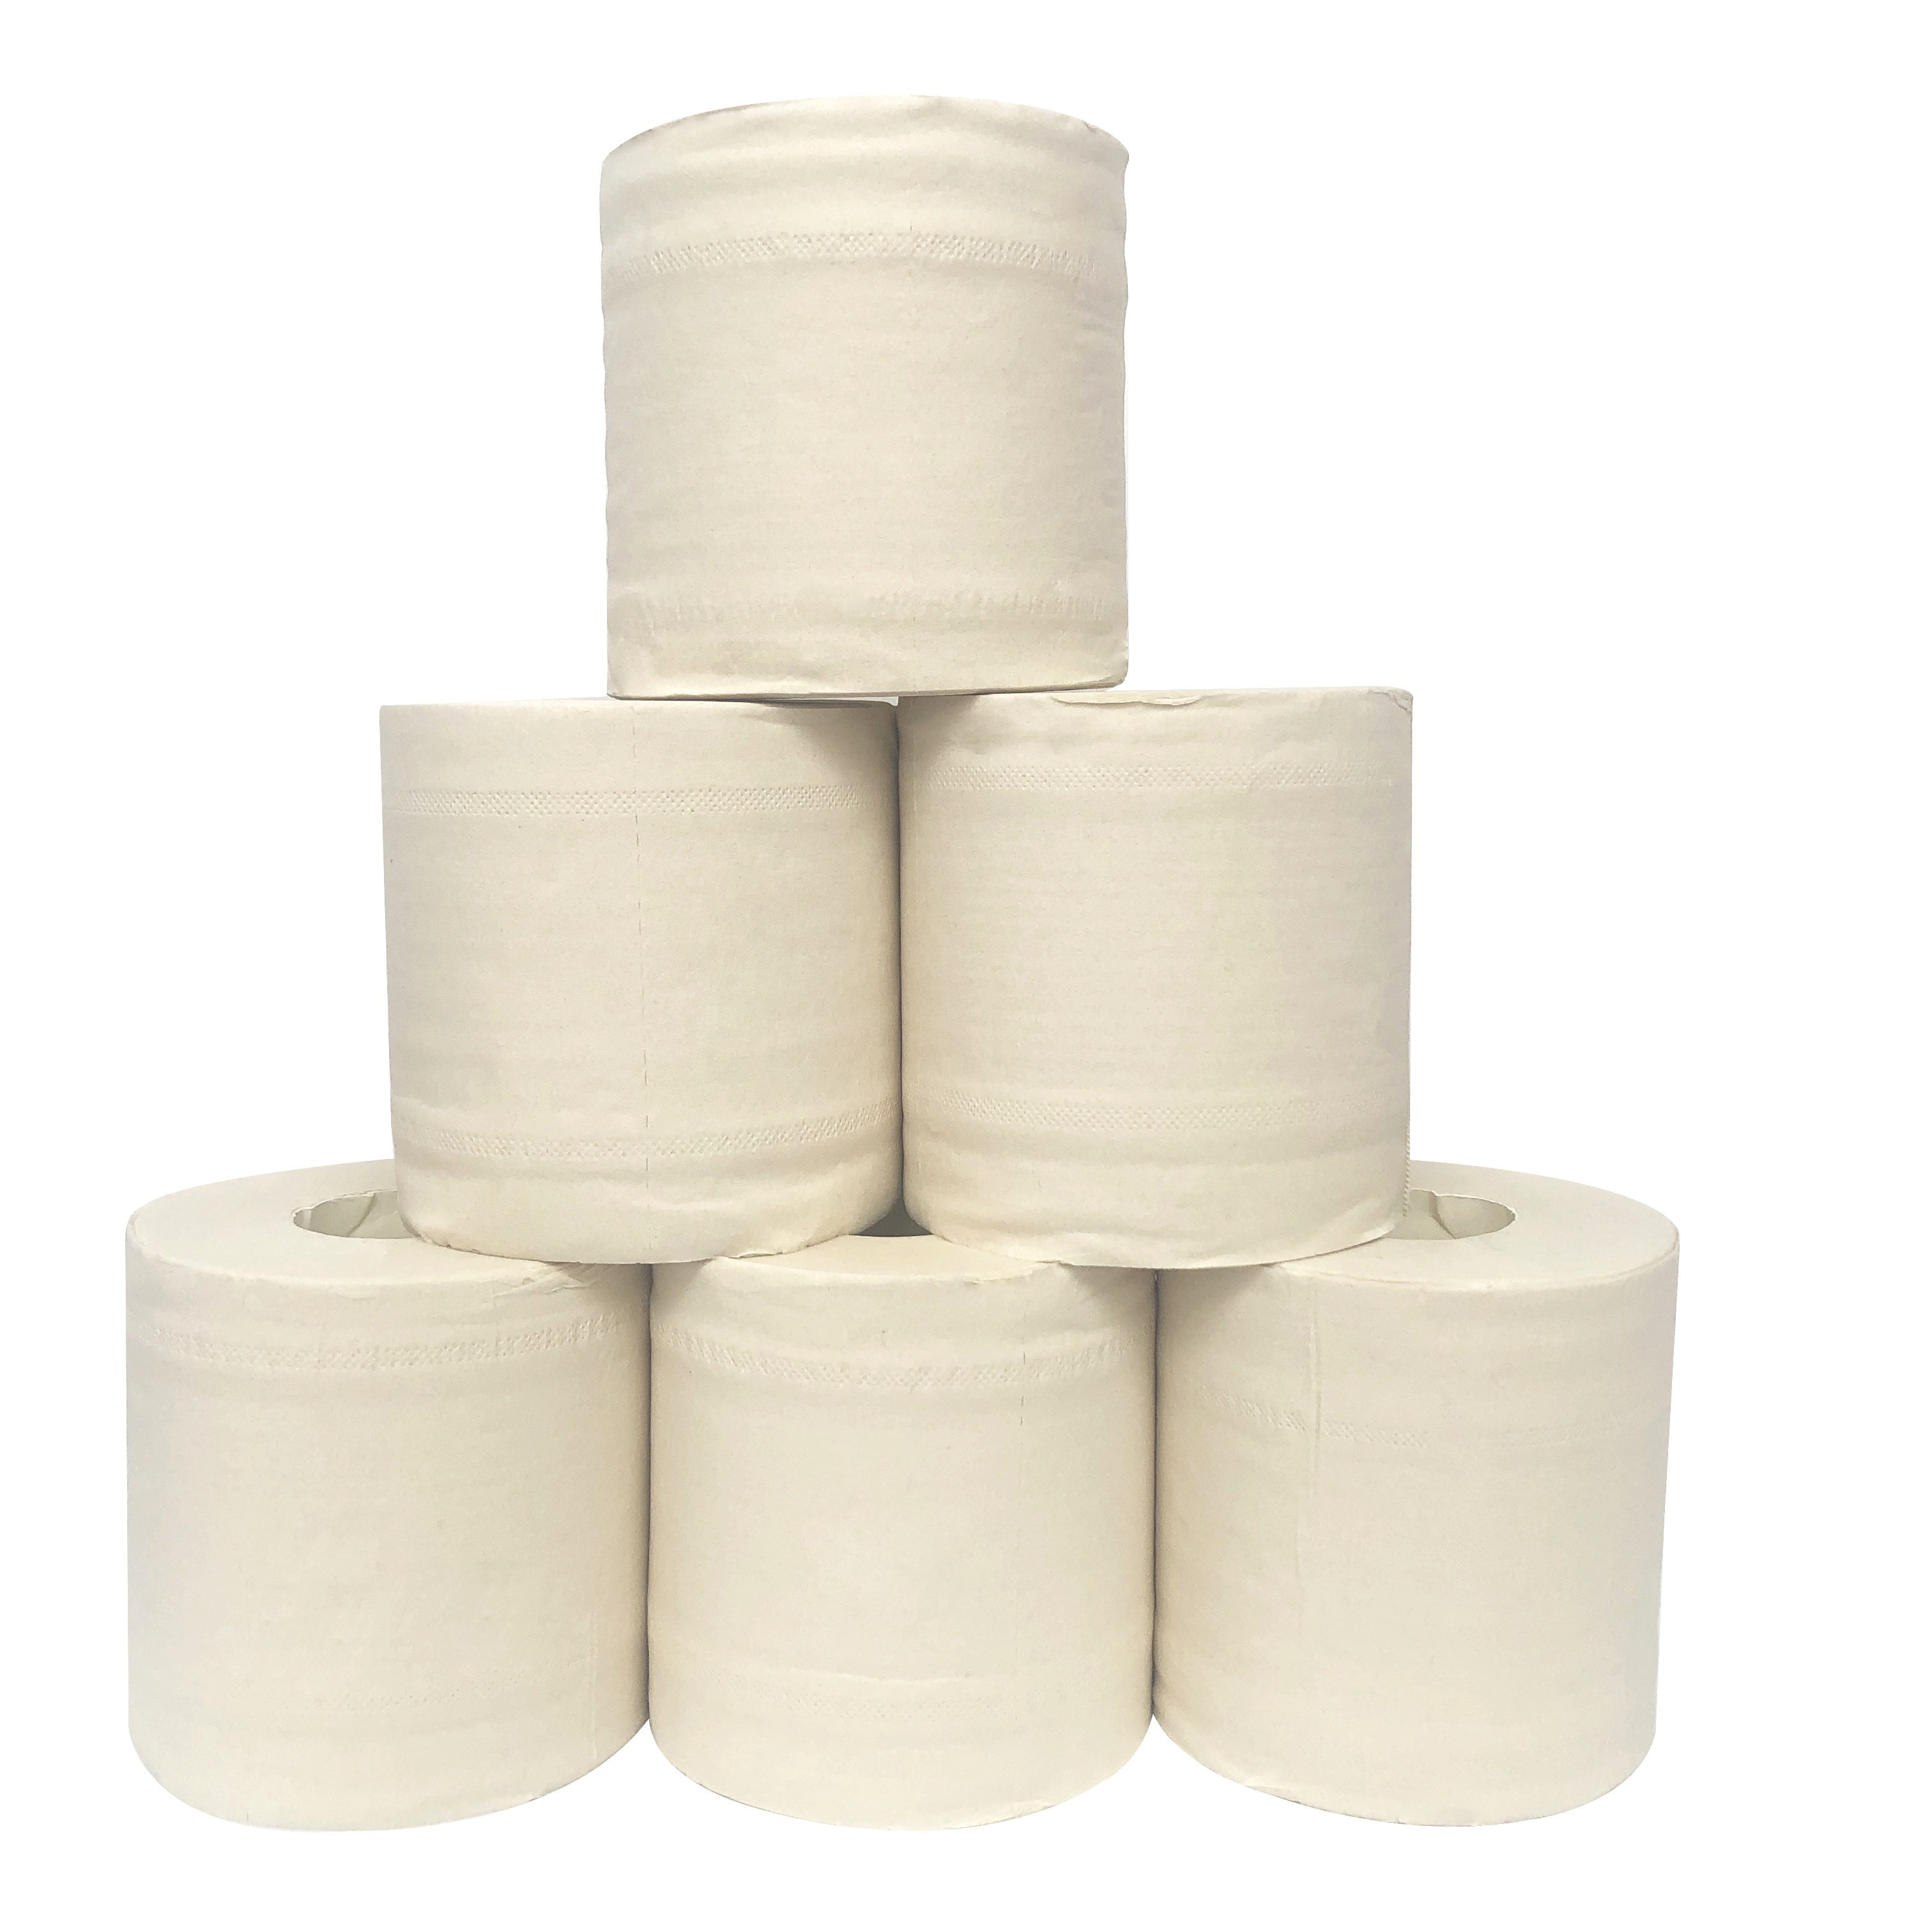 Toilet Paper - Recycled